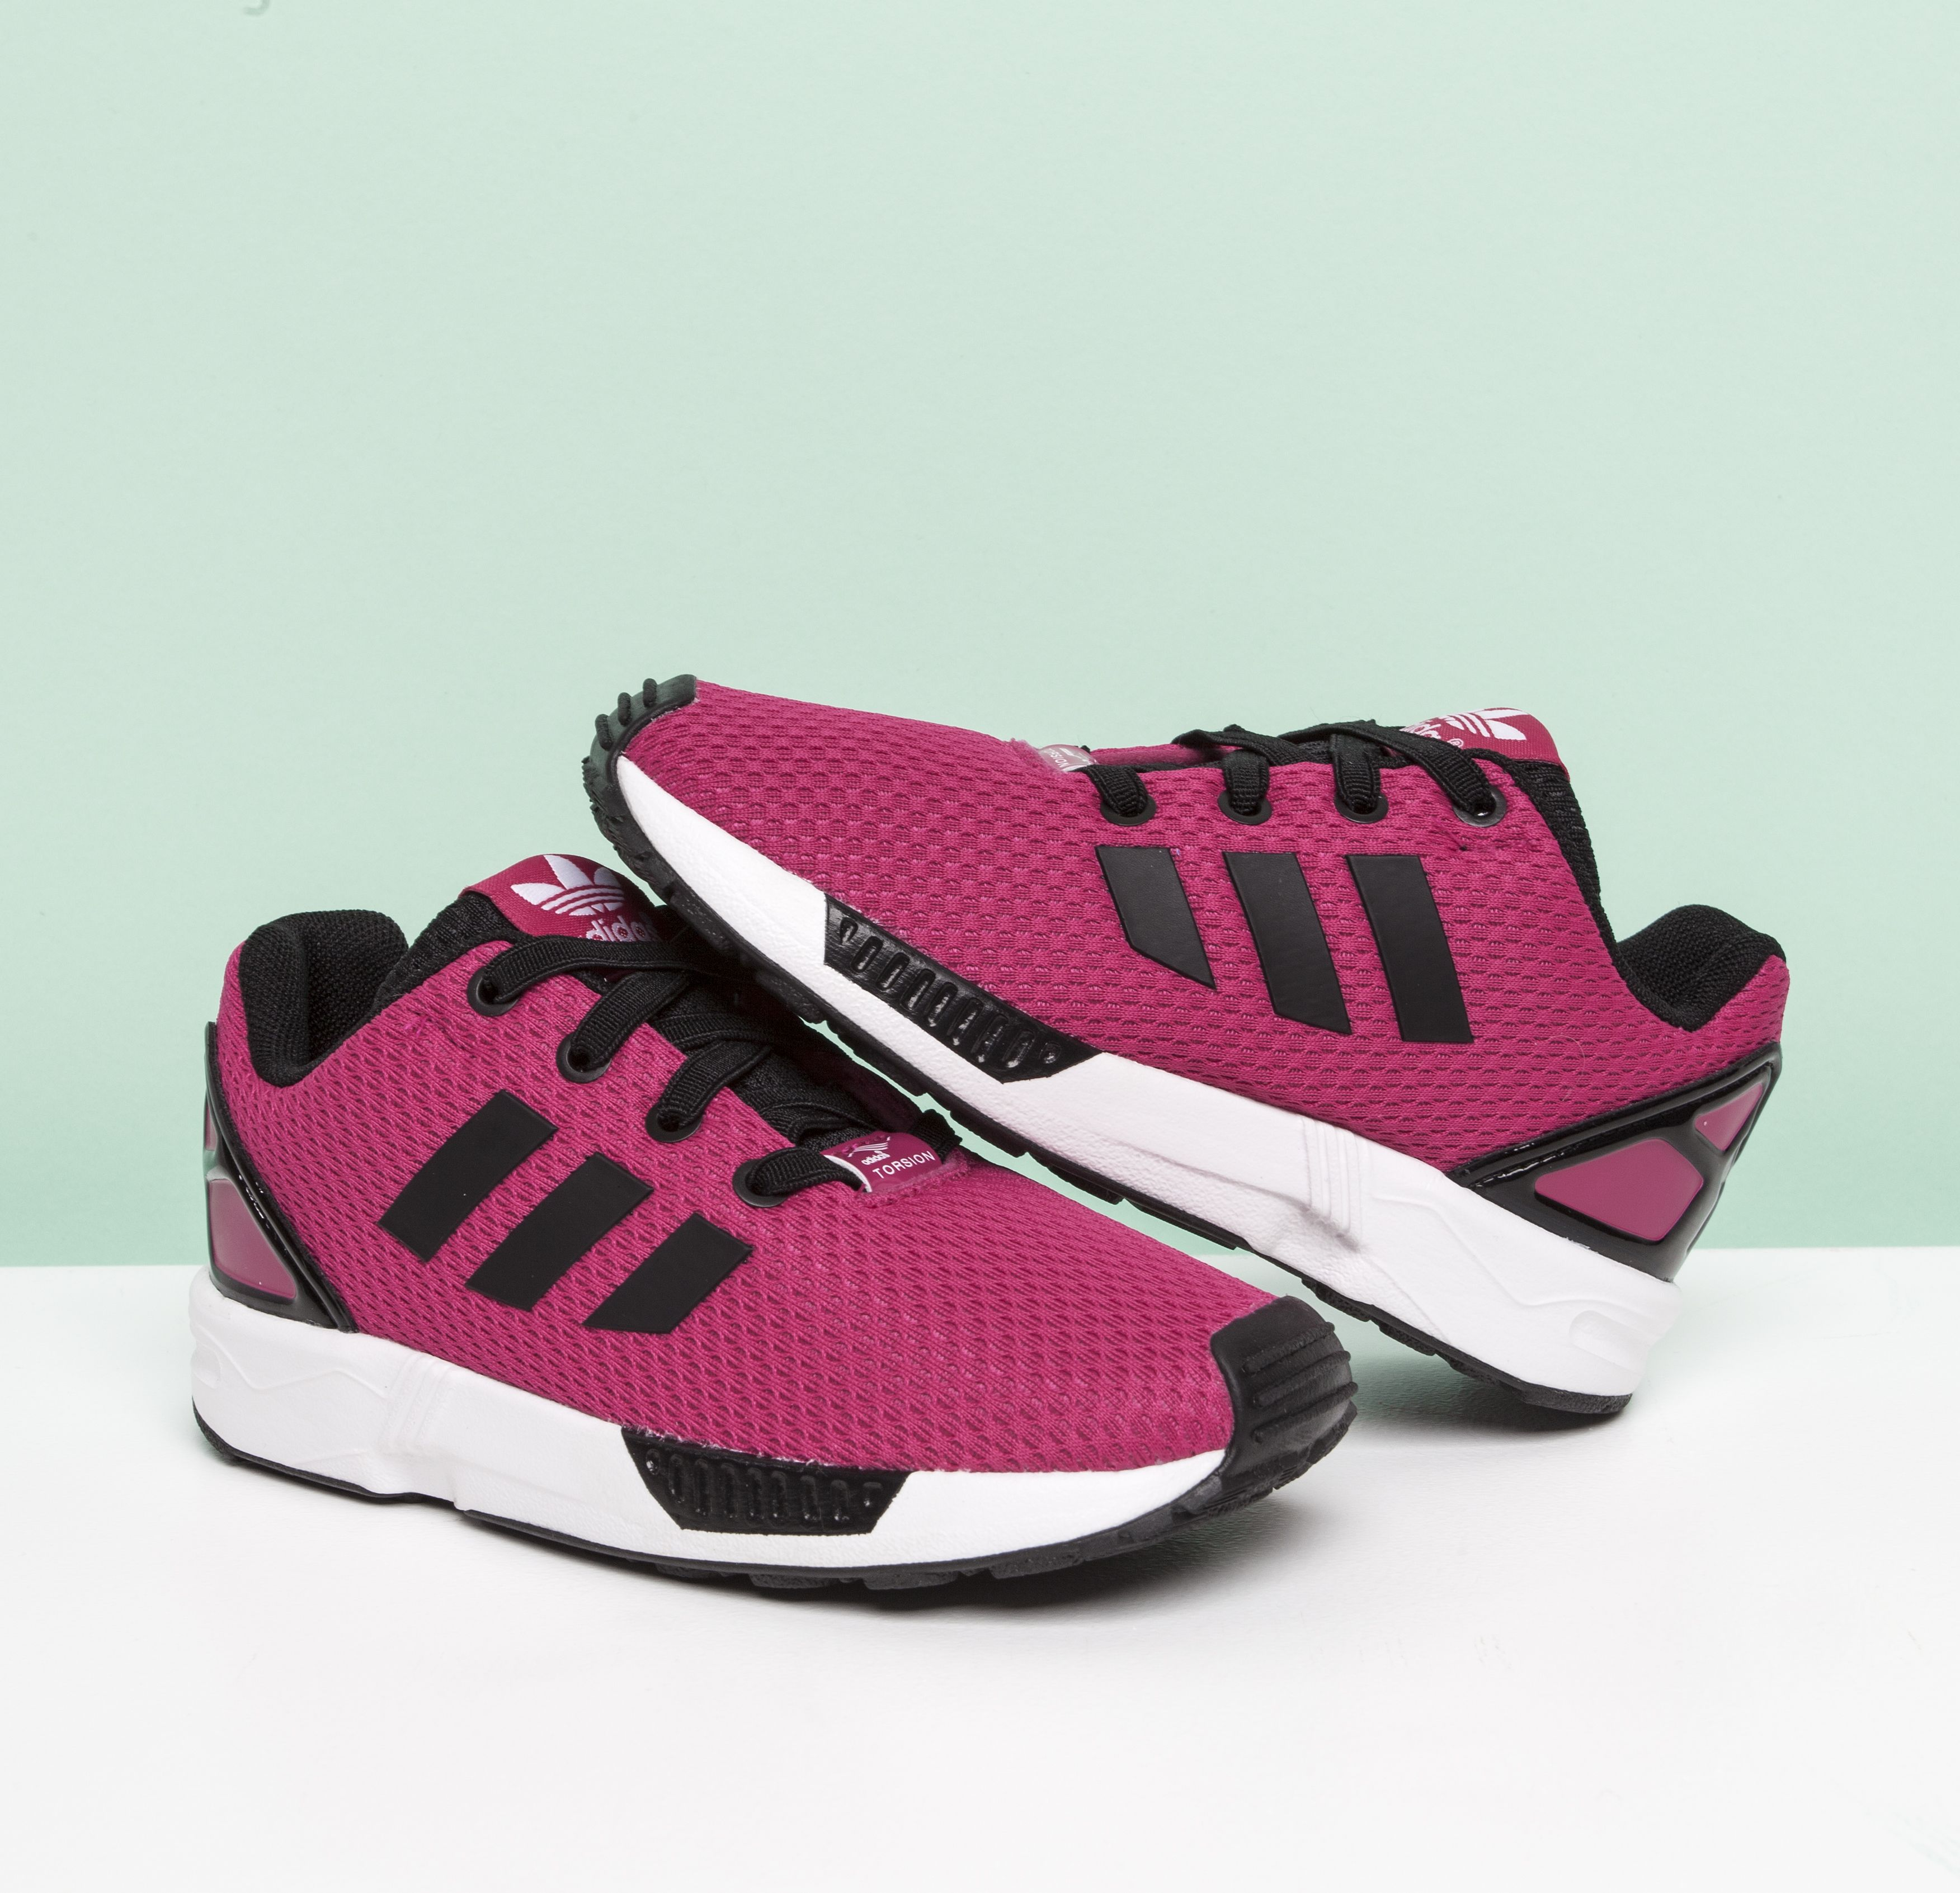 Kid shoes, Pink adidas, Adidas zx flux